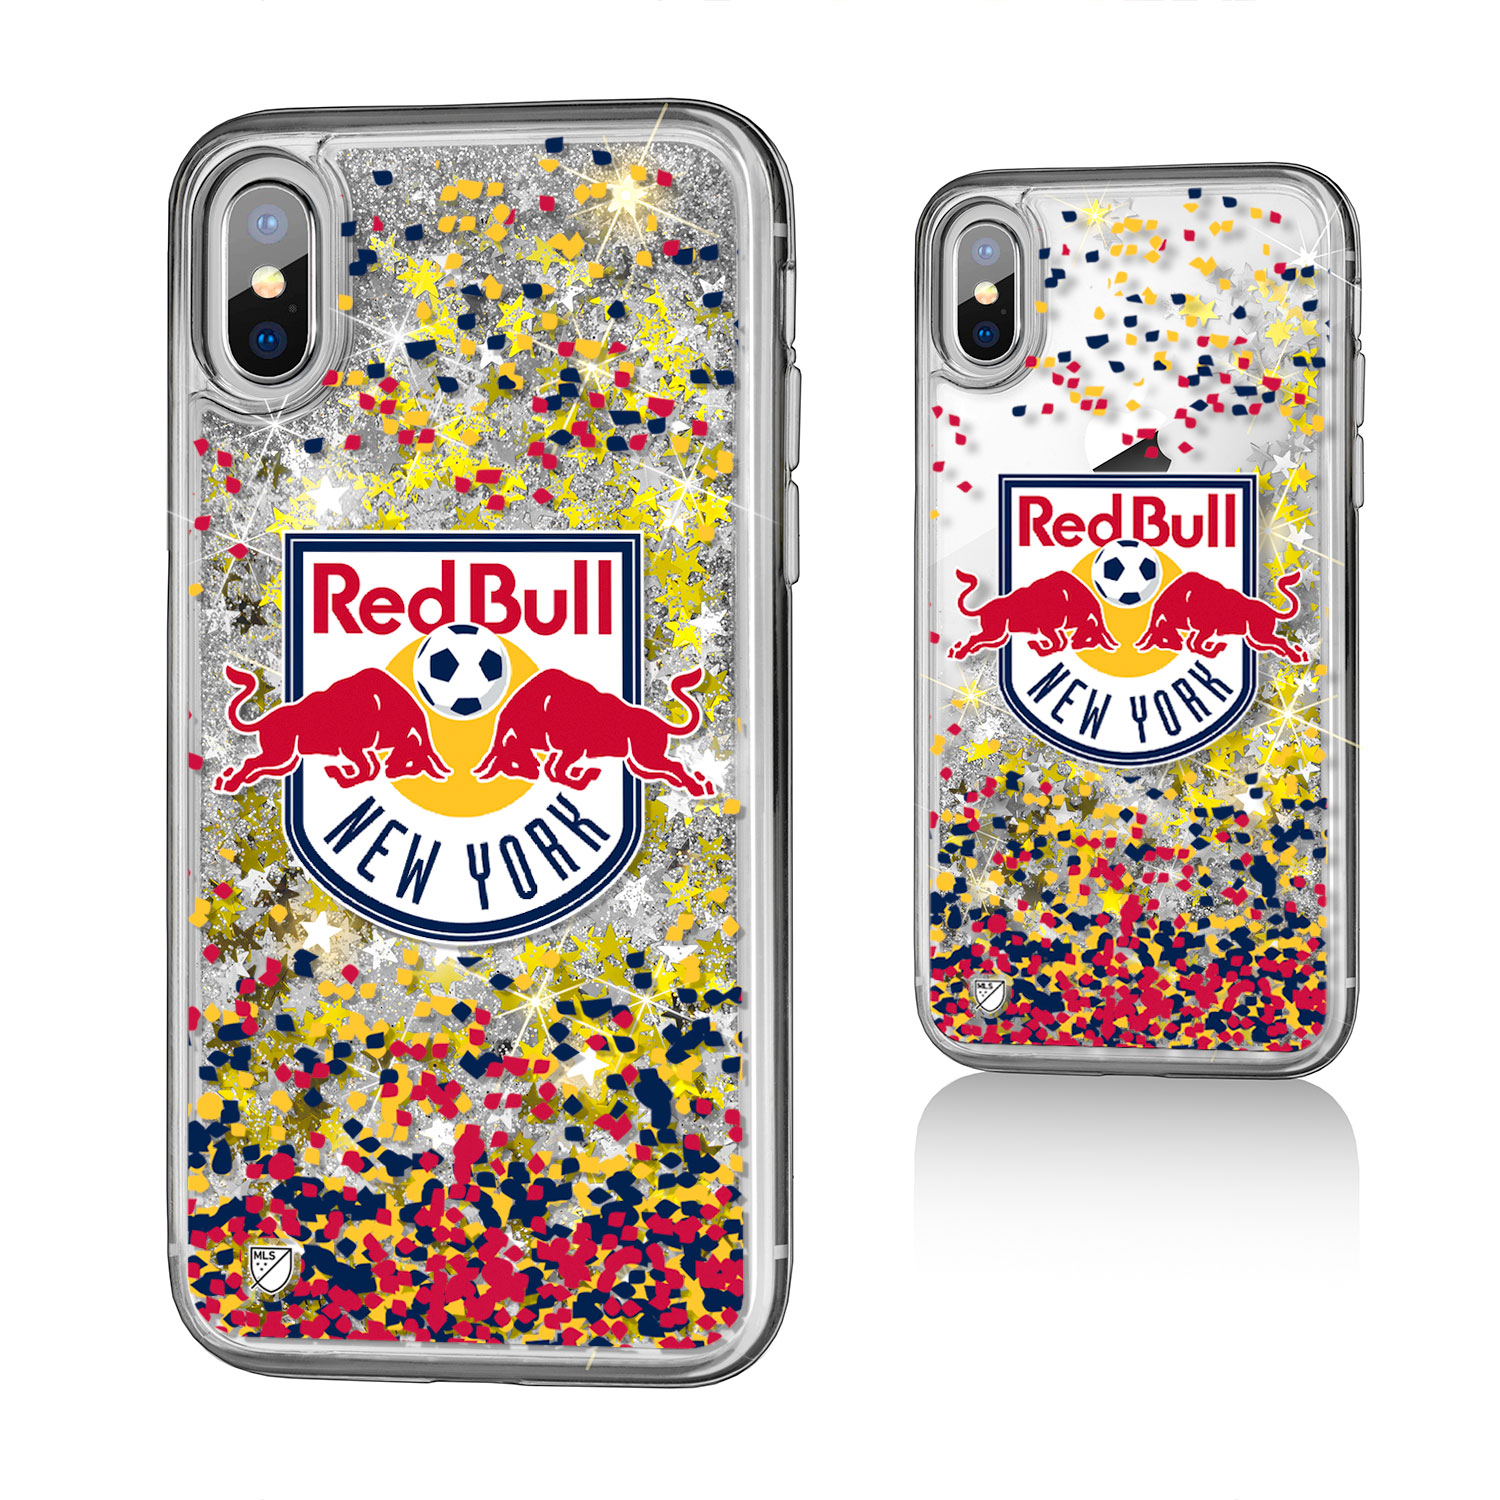 New York Red Bulls RED BULLS Confetti Glitter Case for iPhone X